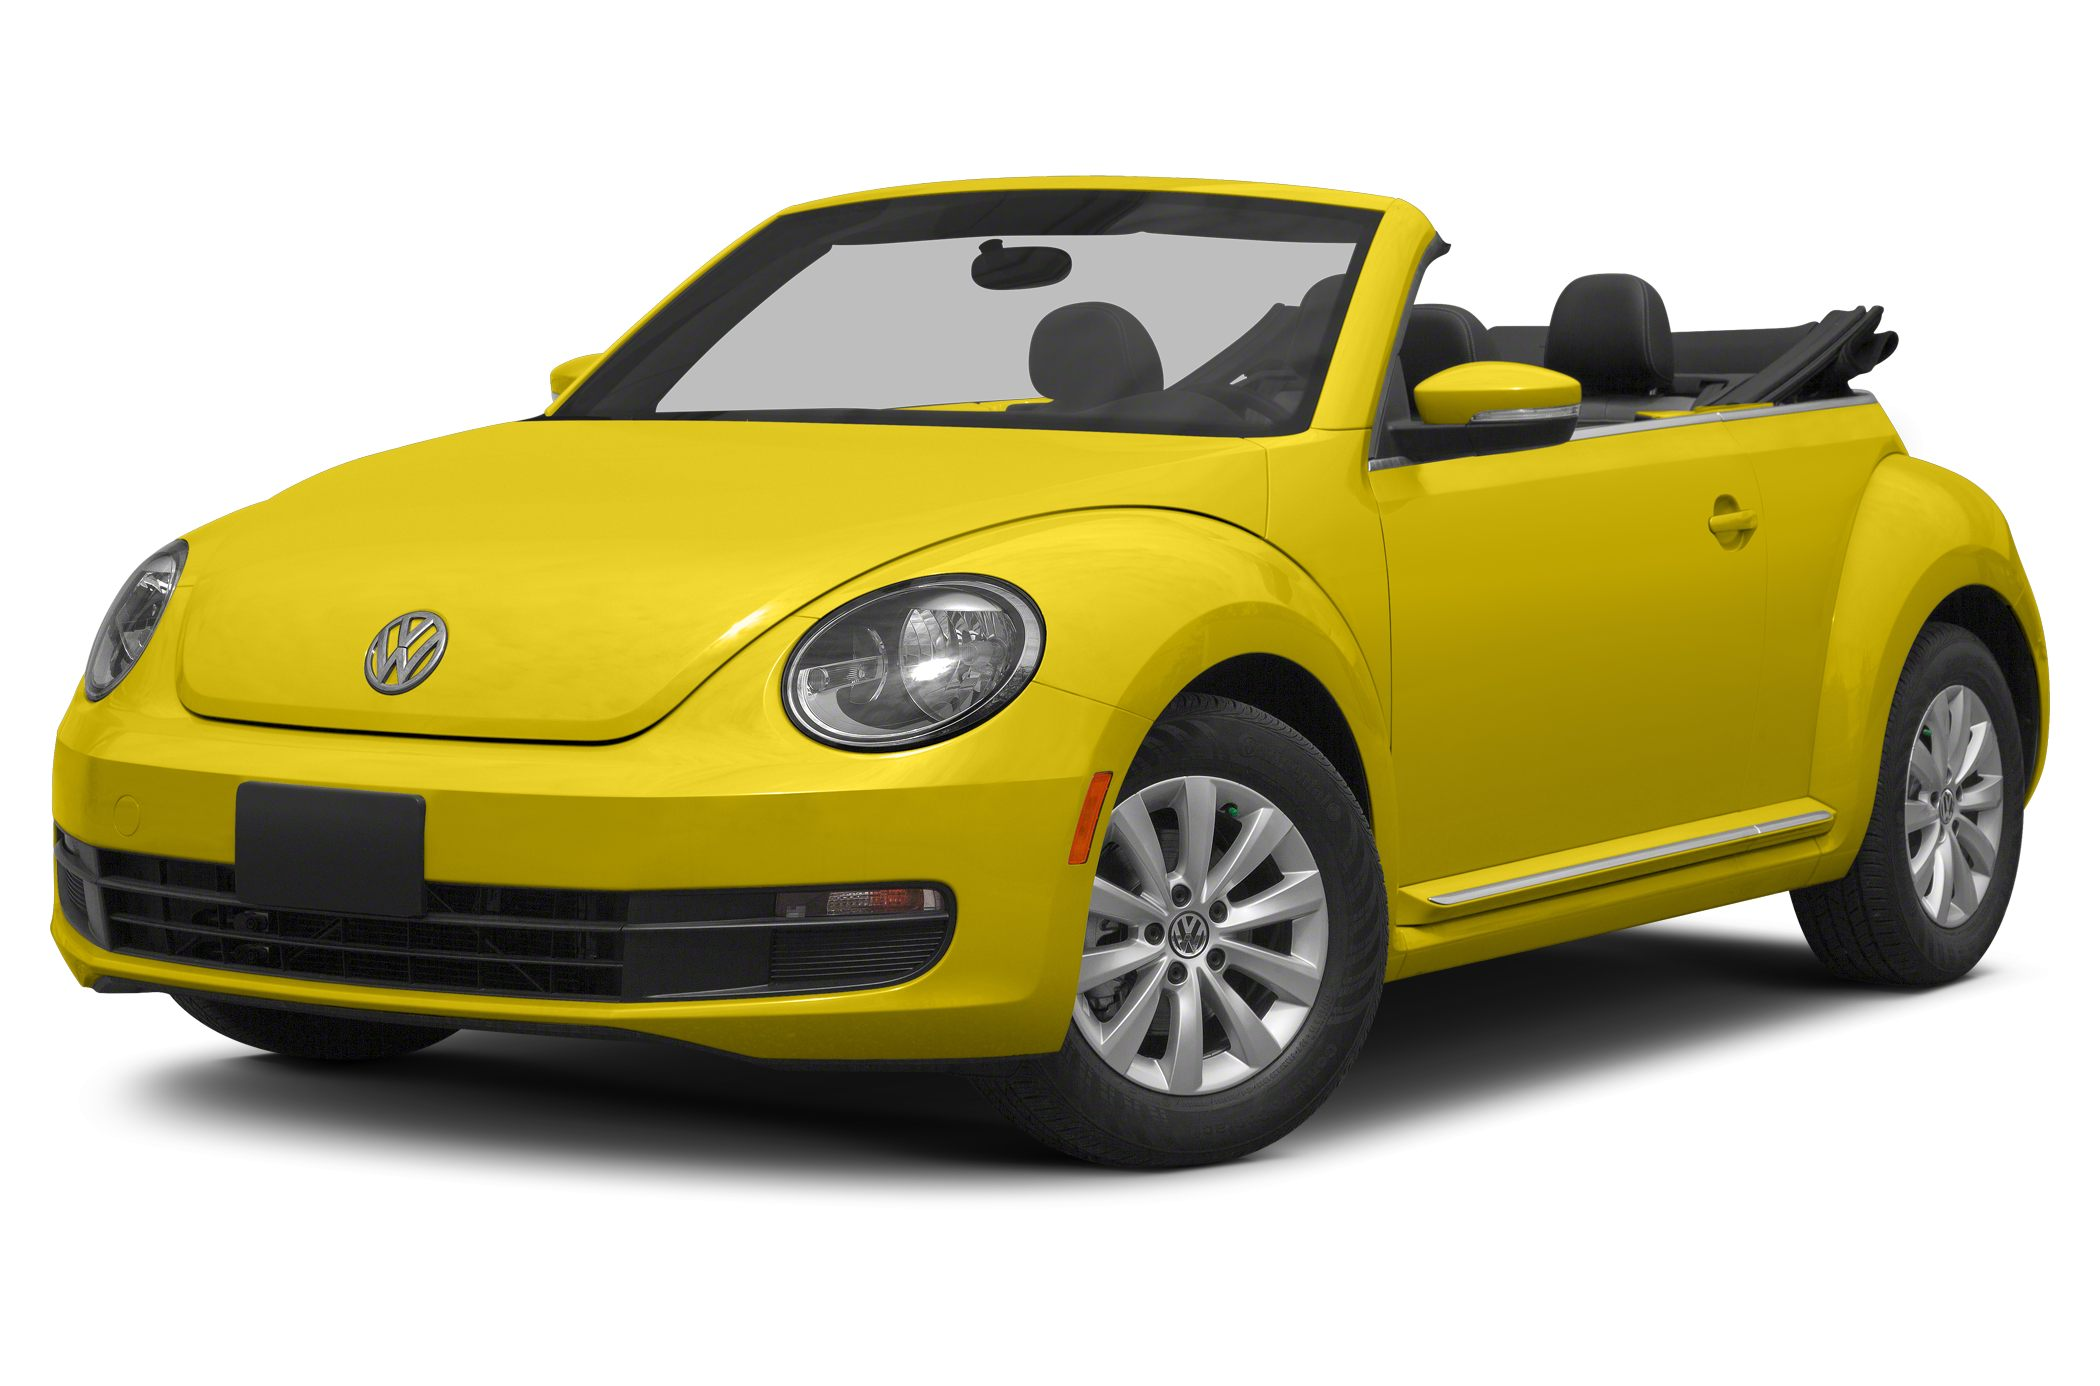 2013 Volkswagen Beetle 2 5l 50s Edition 2dr Convertible Specs And Prices